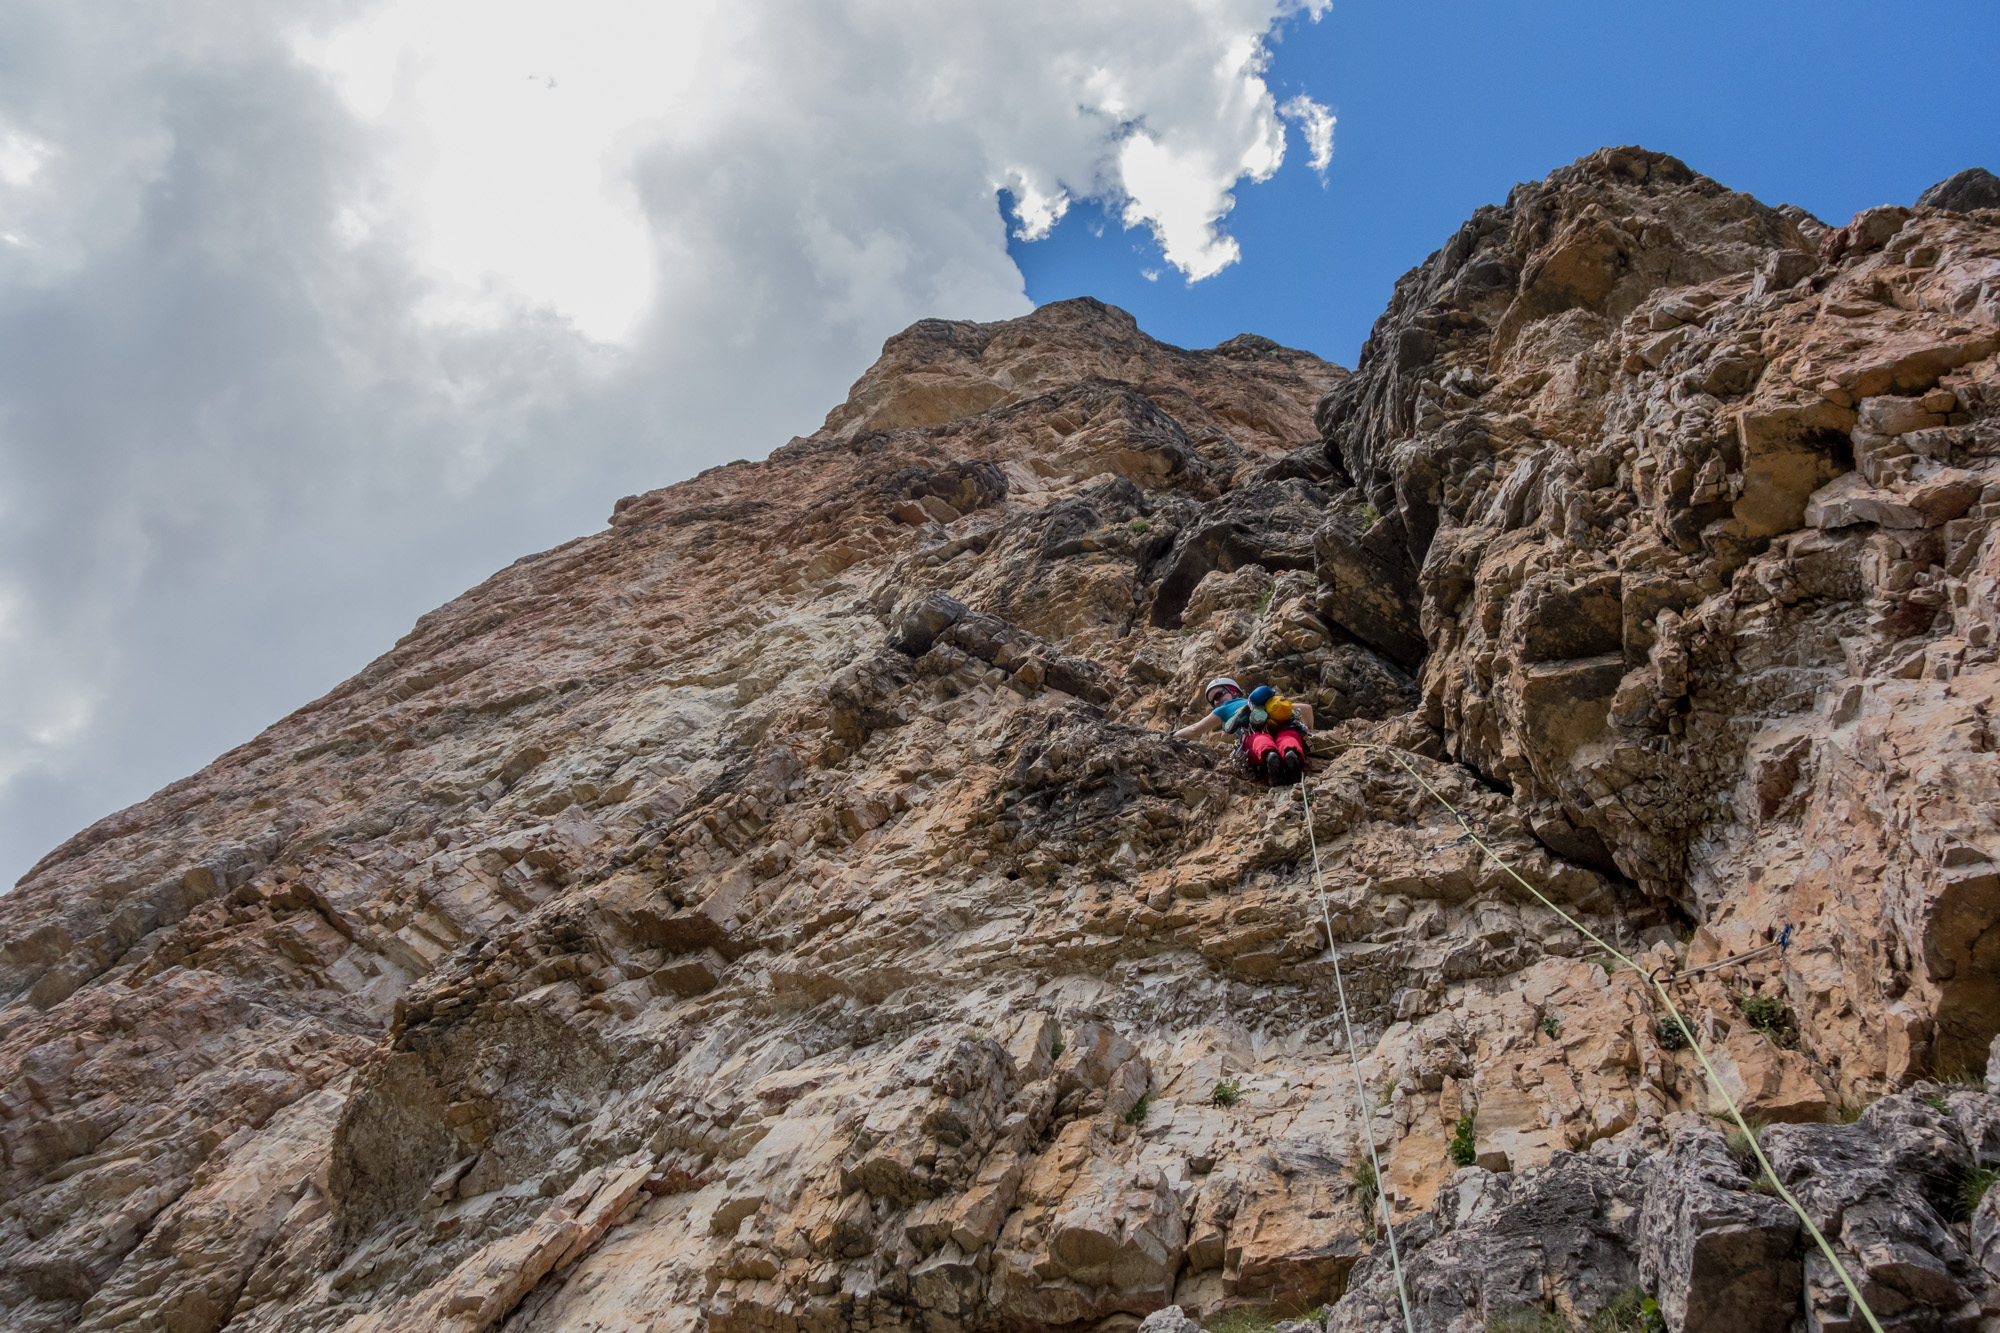 Debs dances through the steepness and the polish on the first pitch of the Dolomiti rite of passage, Via Myriam